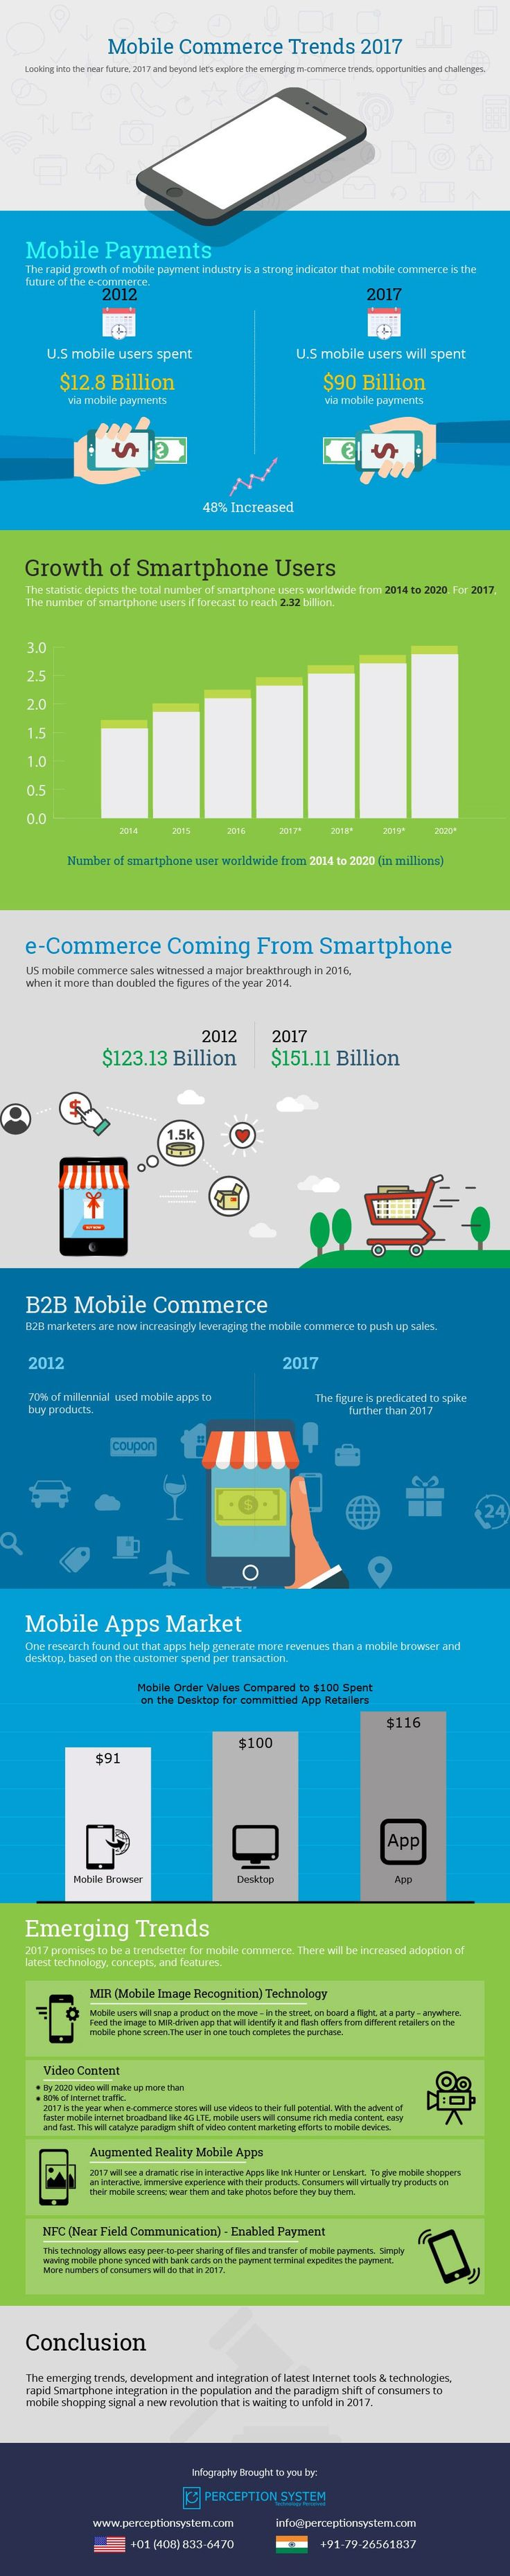 Top Mobile Commerce Trends of 2017 #Infographic #Mcommerce #Trends